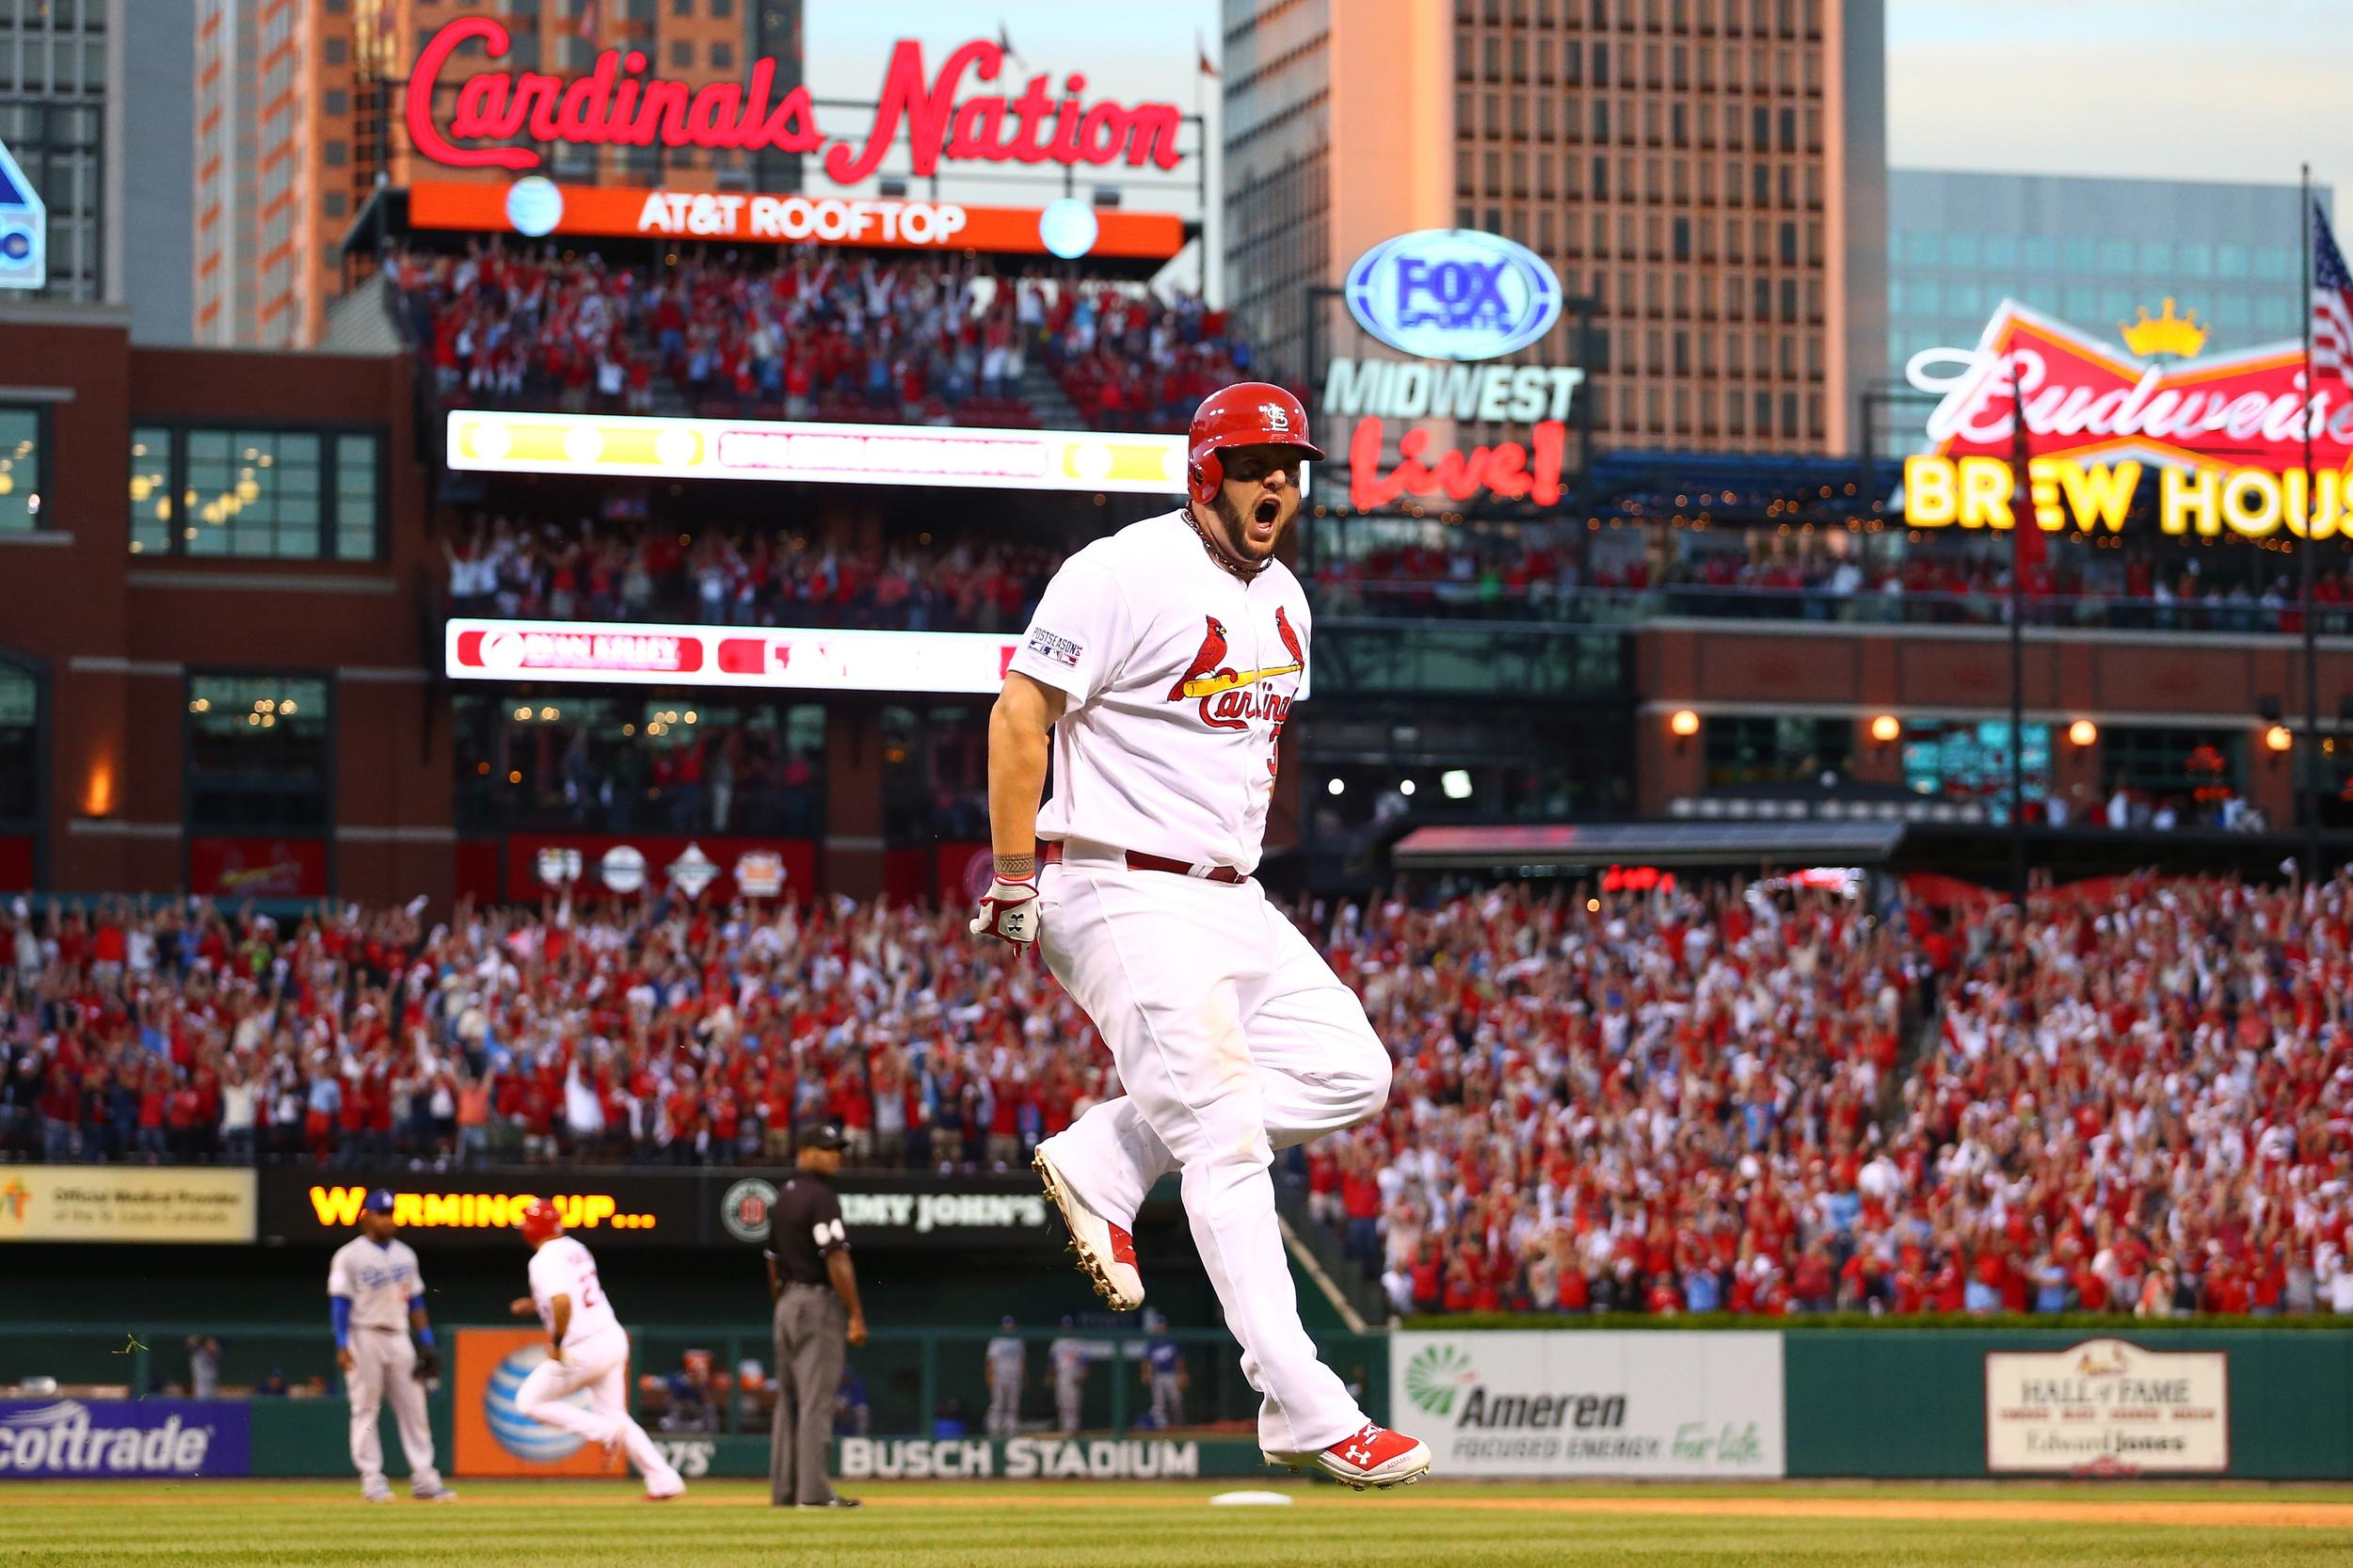 ST LOUIS, MO - OCTOBER 07:  Matt Adams #32 of the St. Louis Cardinals reacts after hitting a three run home run in the seventh inning against the Los Angeles Dodgers in Game Four of the National League Divison Series at Busch Stadium on October 7, 2014 in St Louis, Missouri.  (Photo by Dilip Vishwanat/Getty Images)